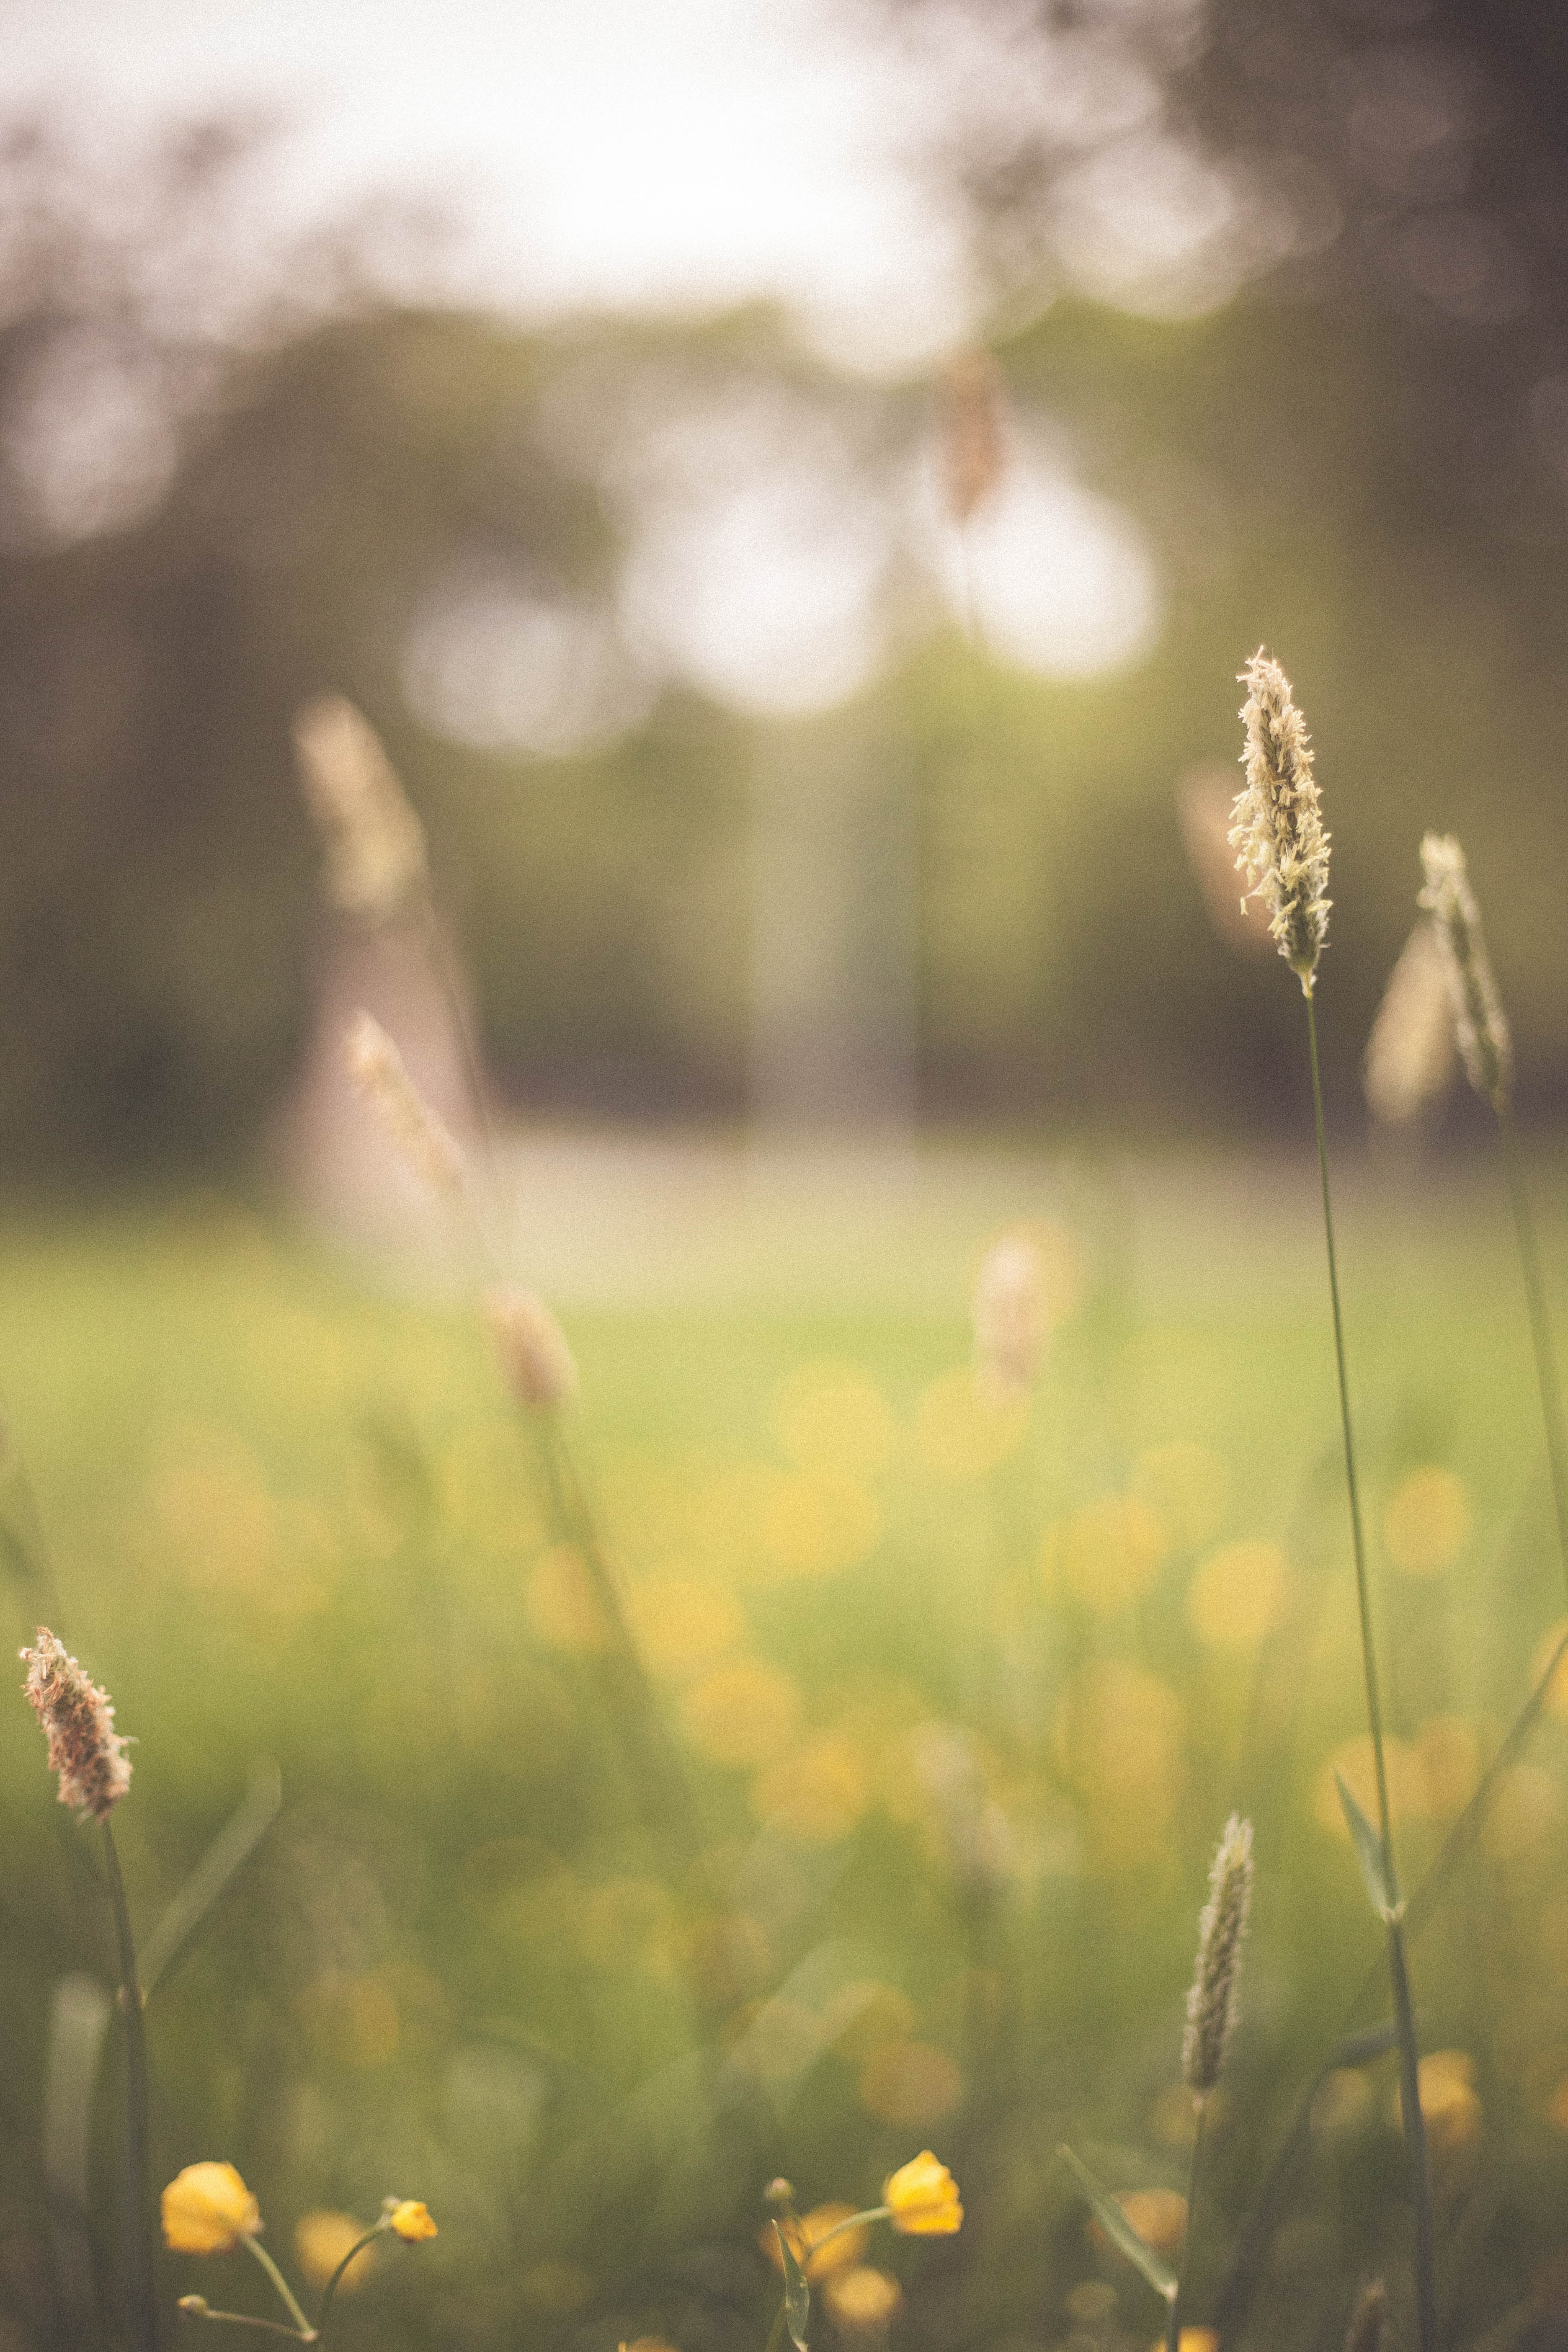 Wildflower in grassy field at daytime with blurry background